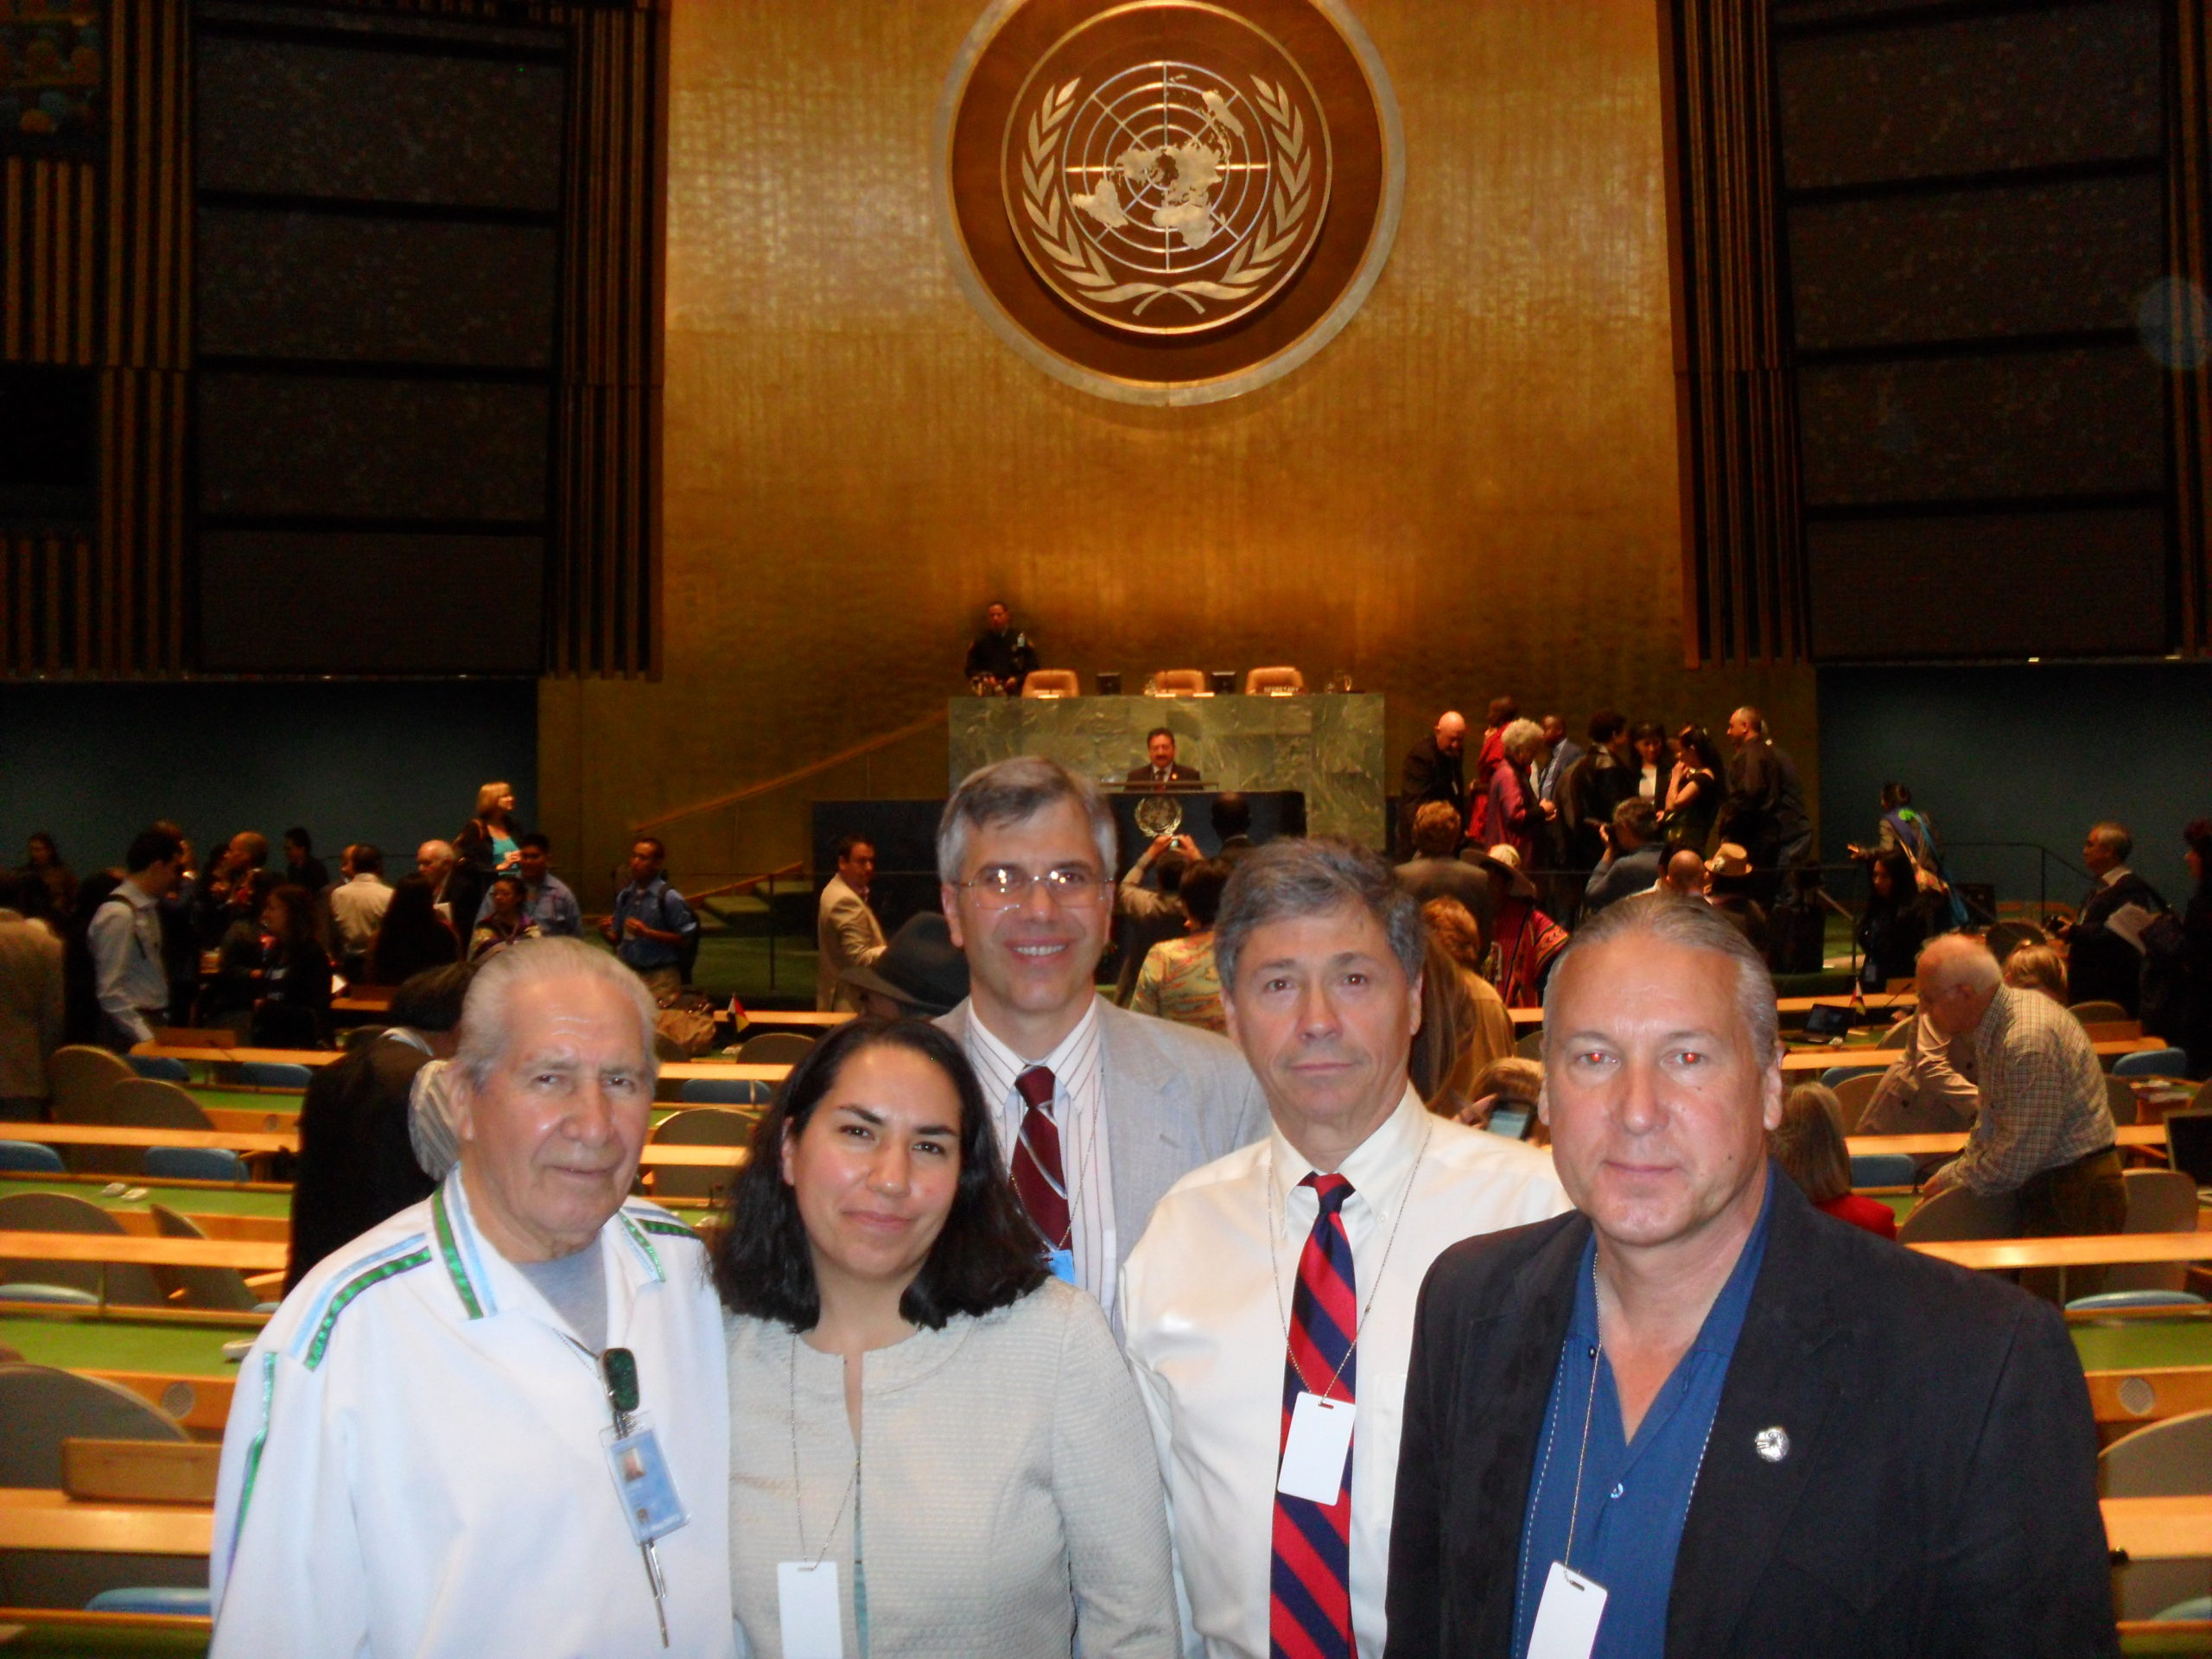 Bob Miller, John Diffenbacher-Krall, Steve Newcomb, and Chief Oren Lyons at the United Nations.